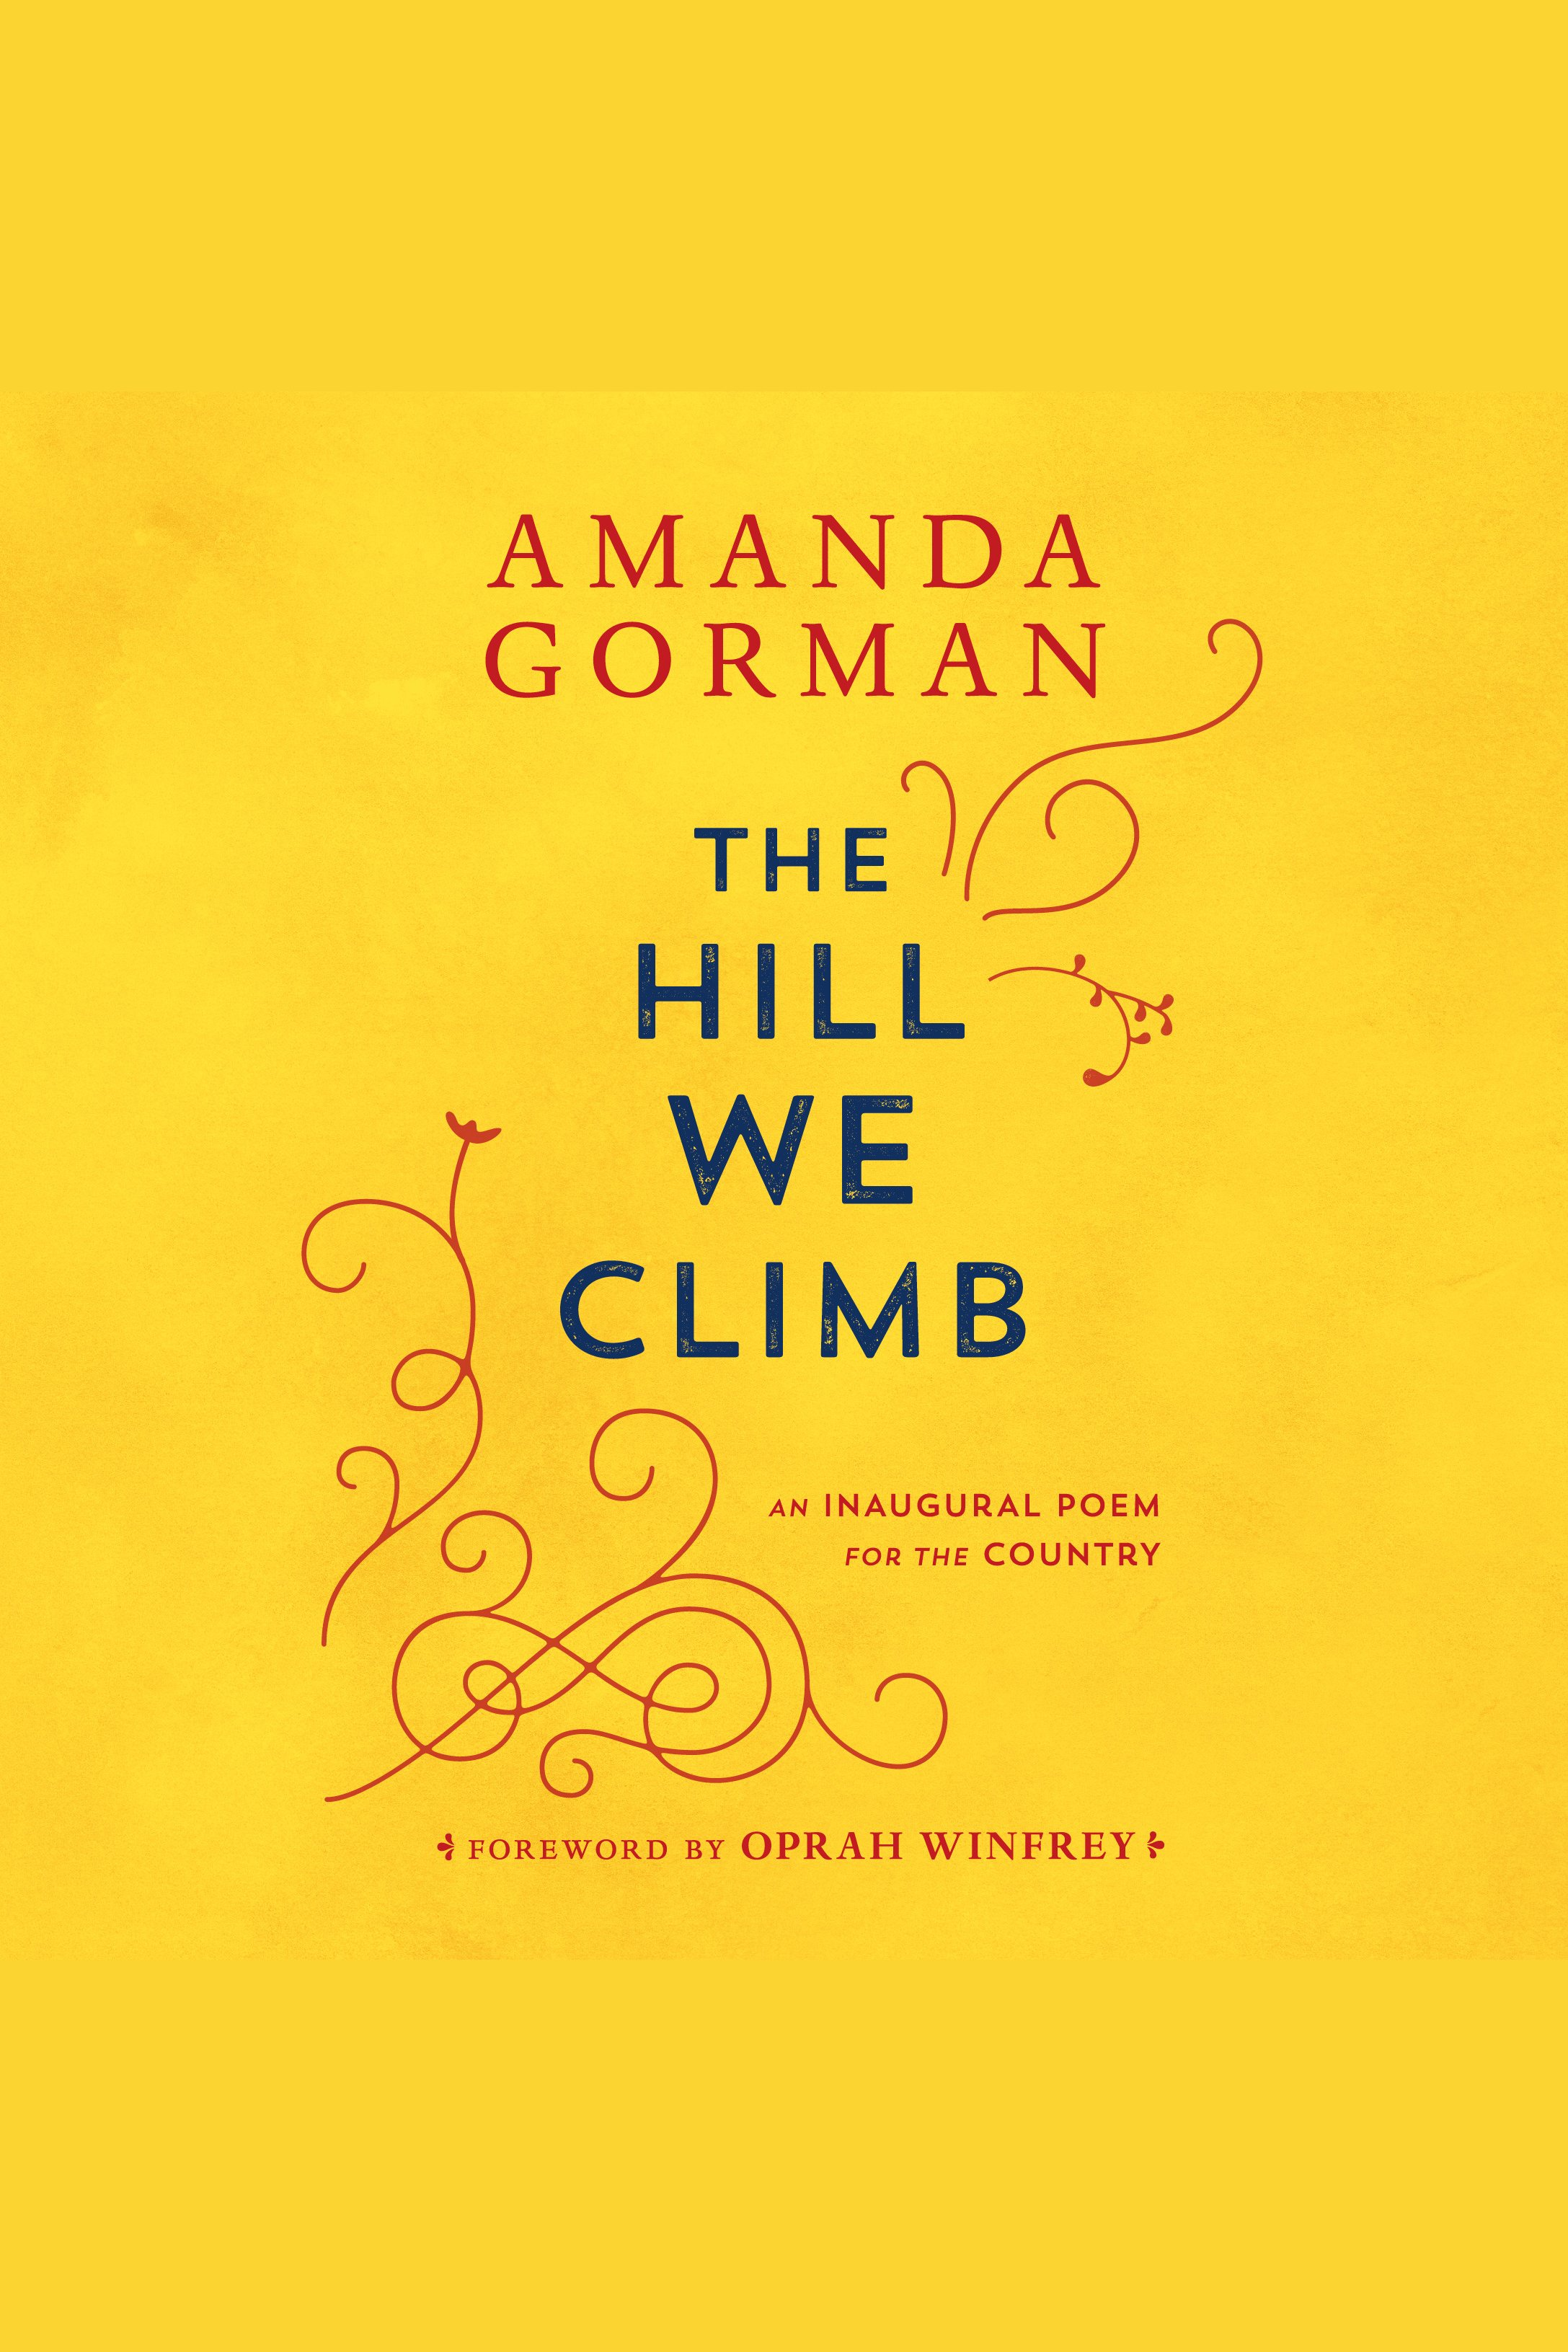 Cover Image of The Hill We Climb